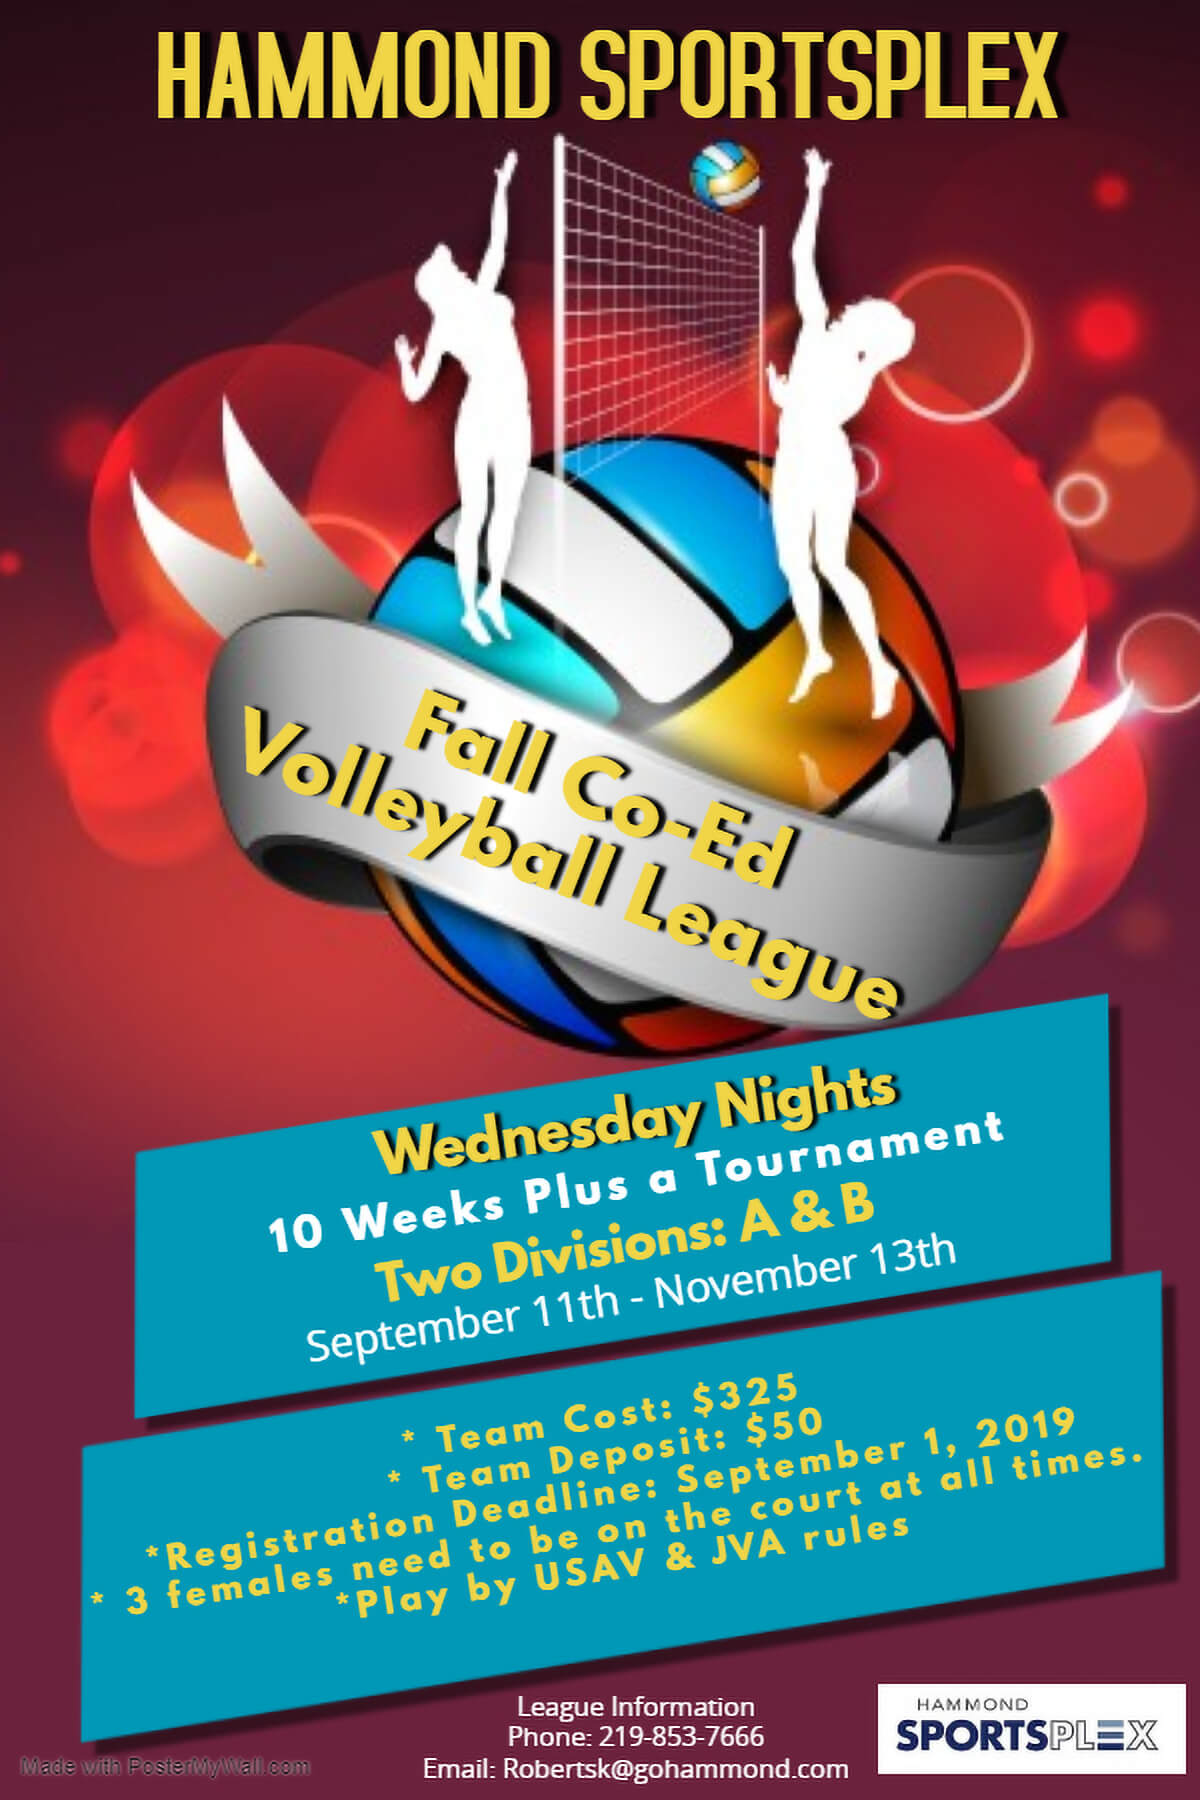 Hammond Sportsplex to Host Co-ed Fall Volleyball League